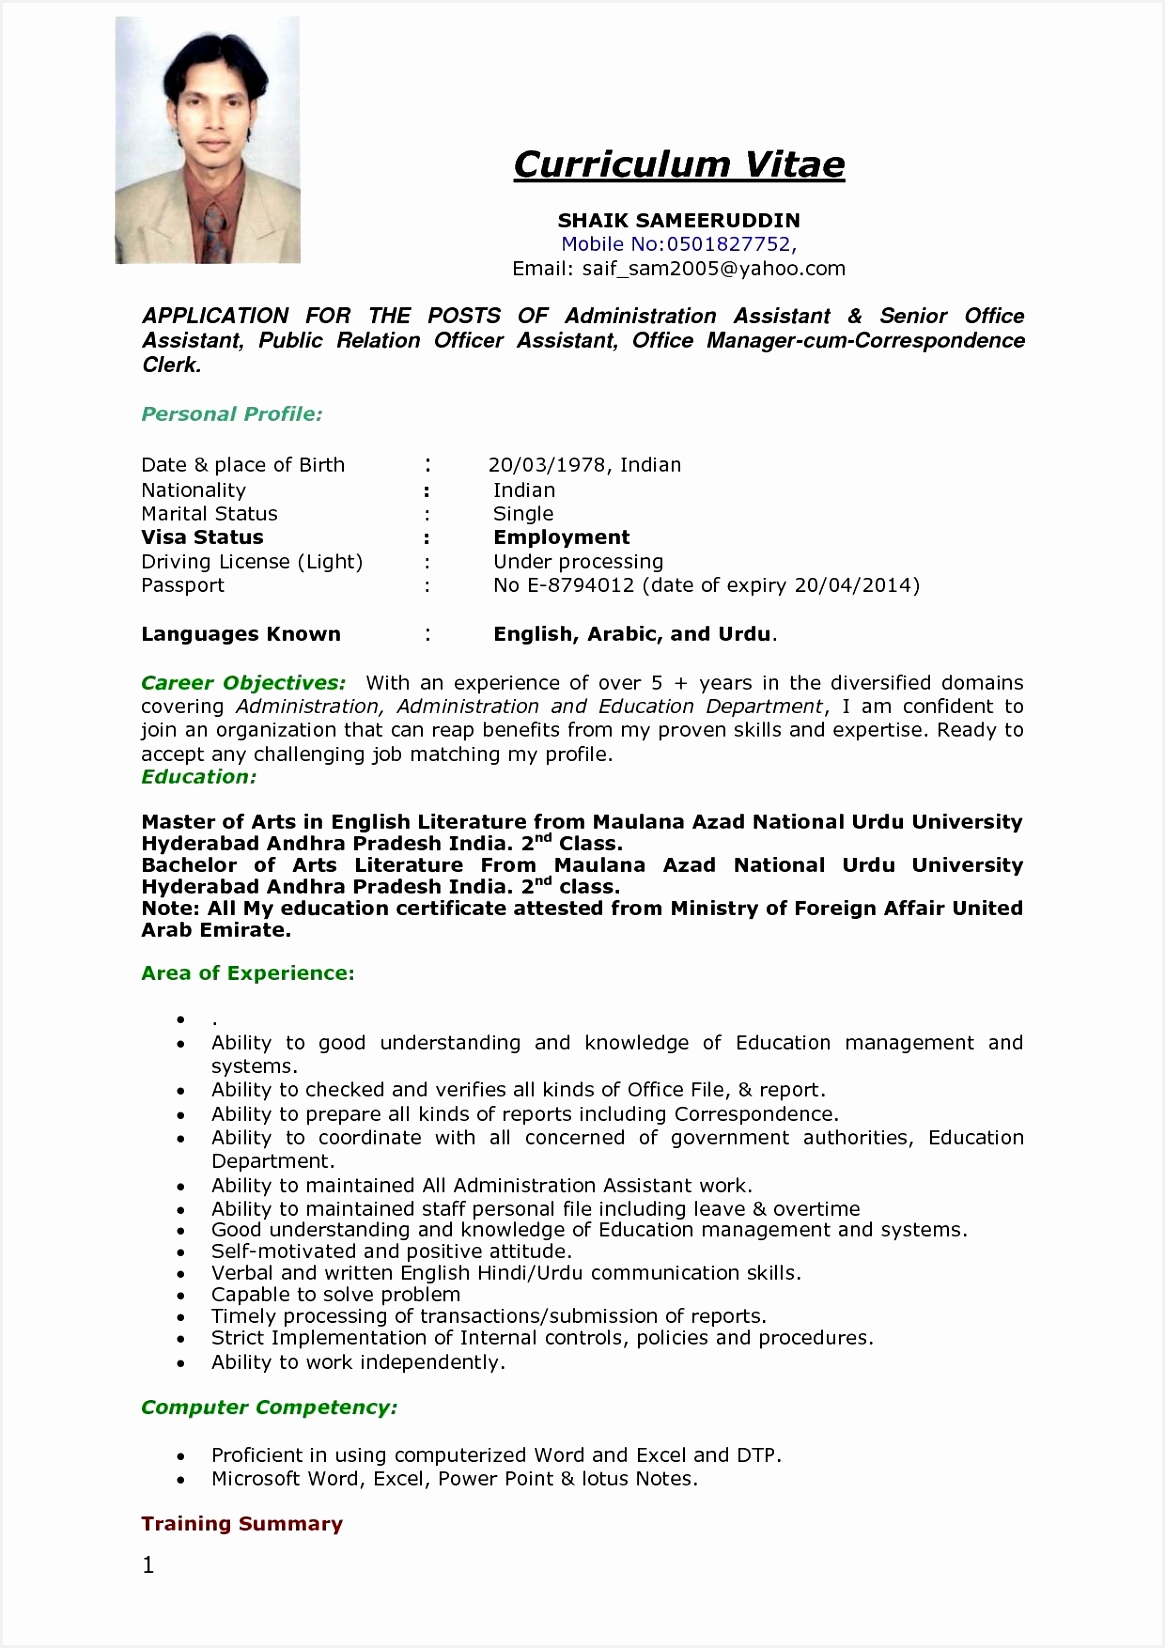 Resume Sample New Blank Resume Template Pdf Best Examples 0d Skills Effective 16481165phdEy